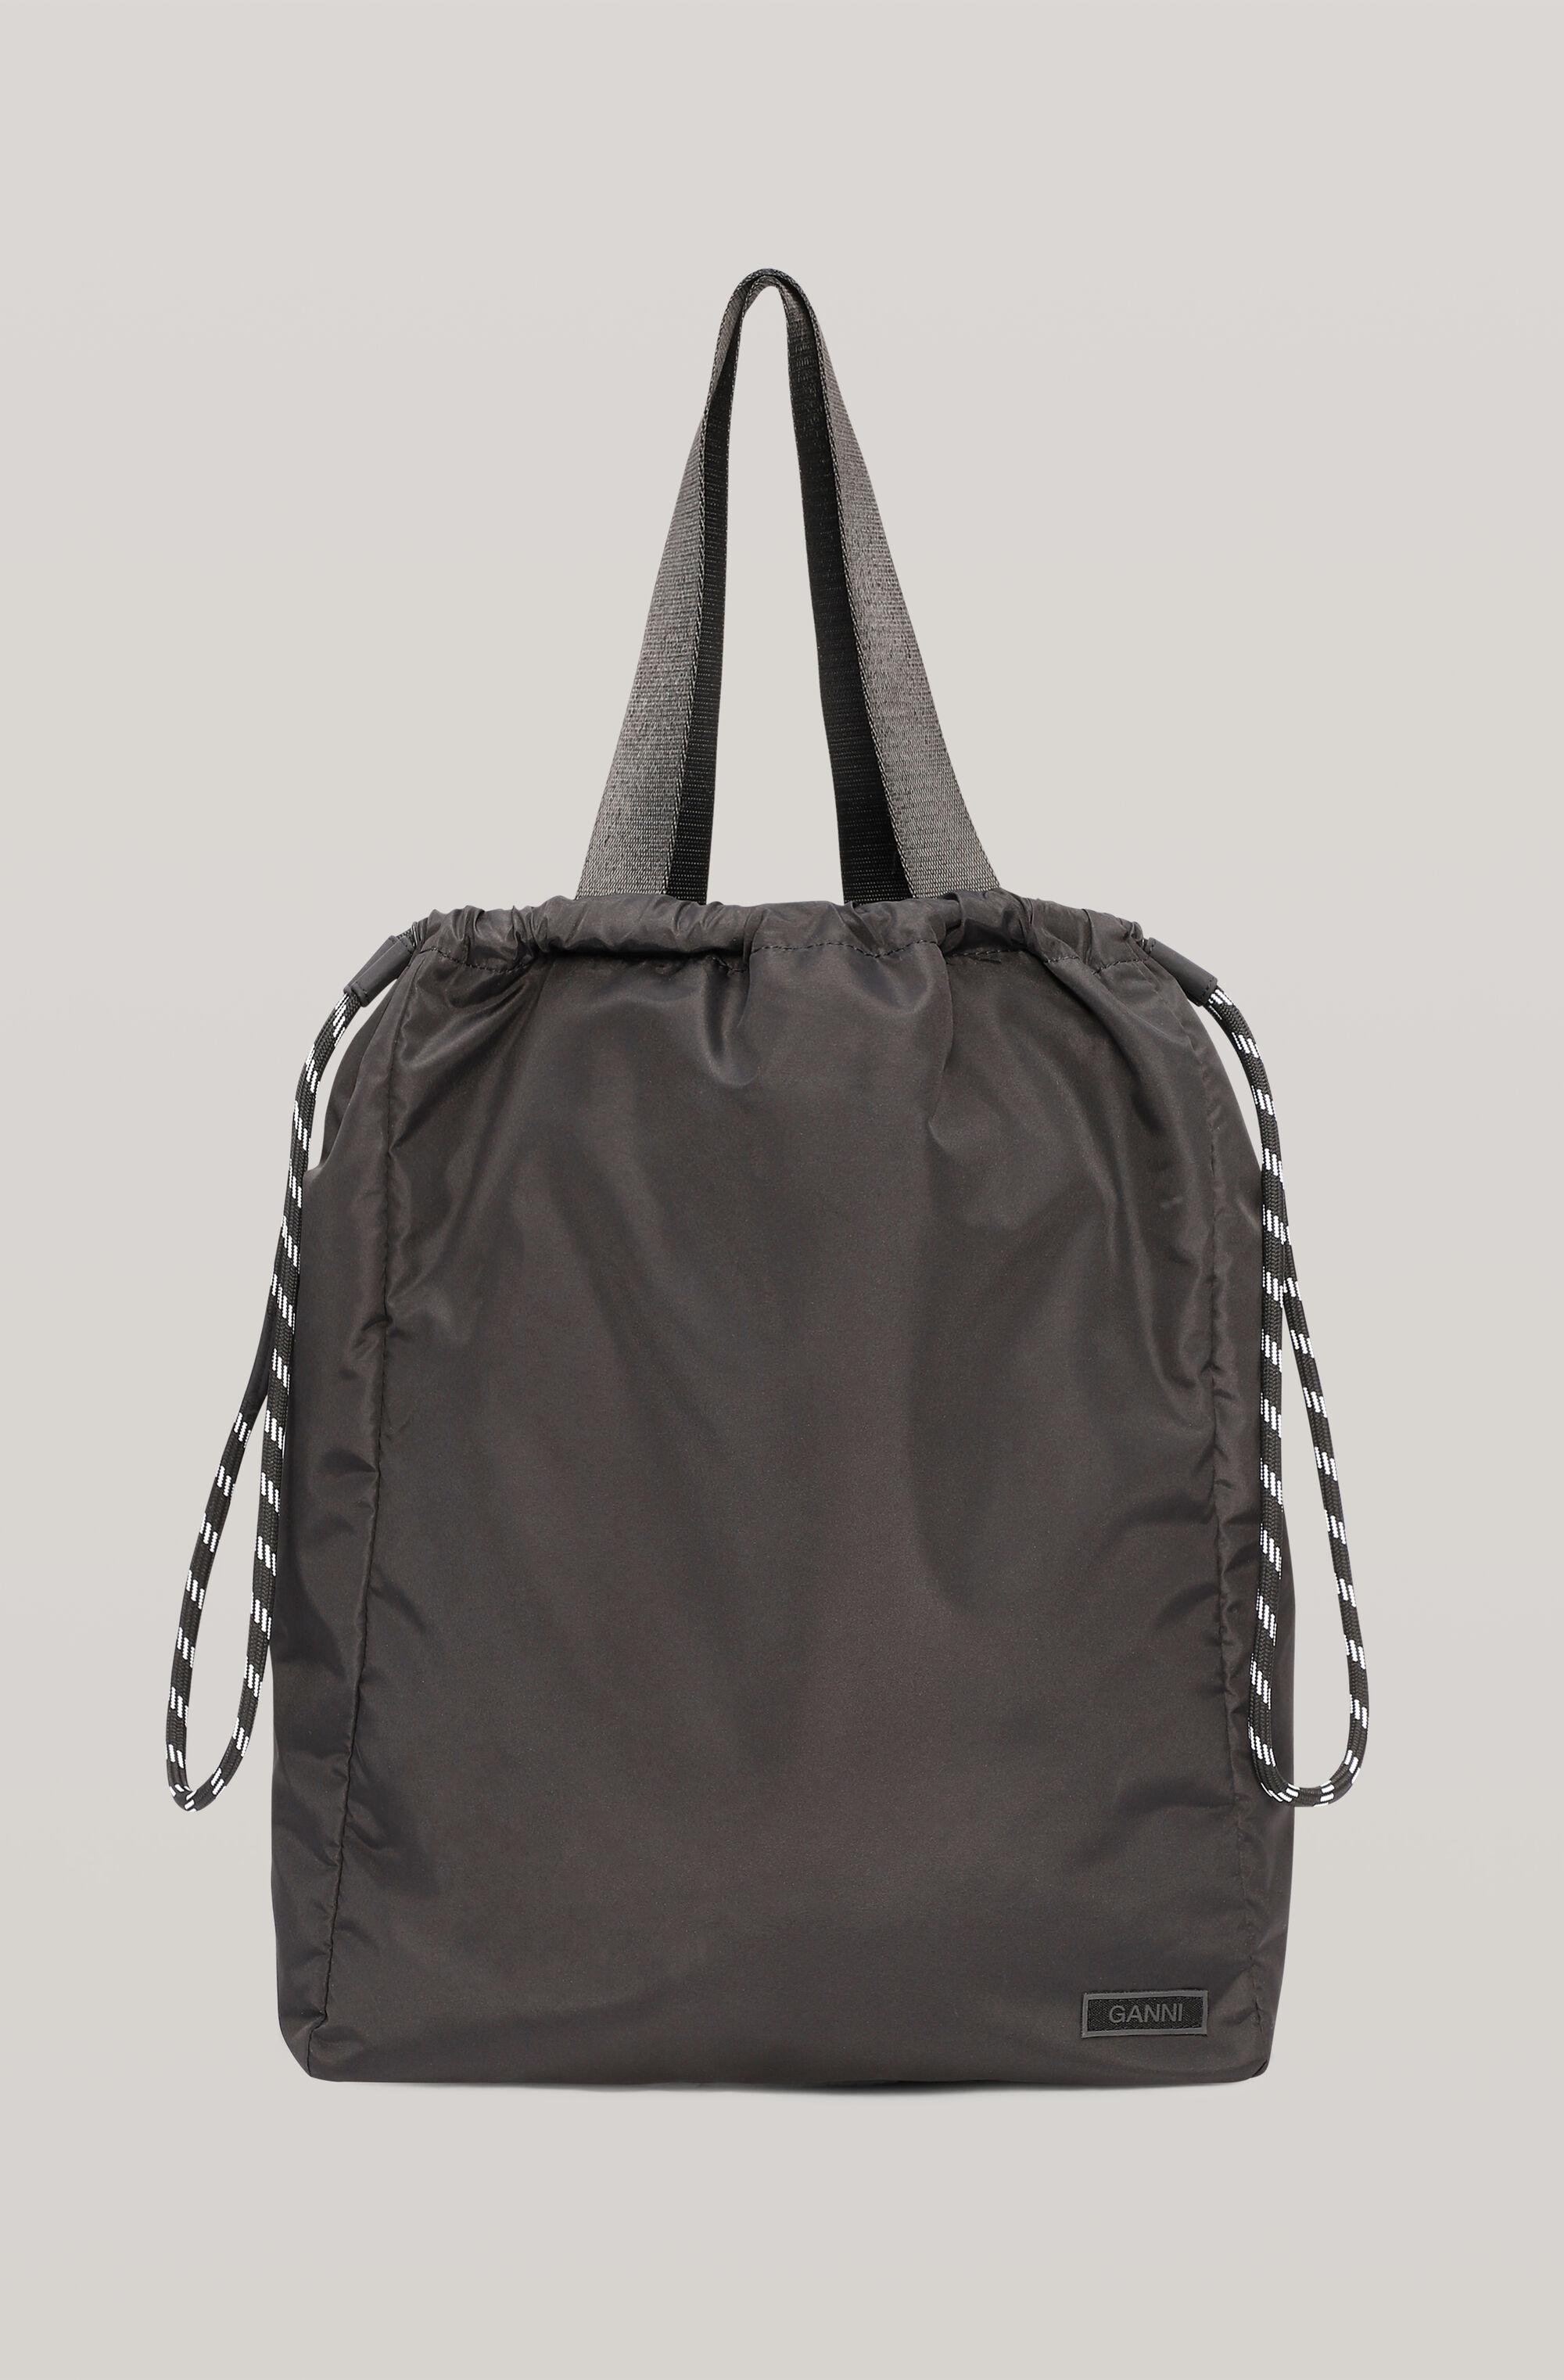 Recycled Tech Fabric Bags Drawstring Tote